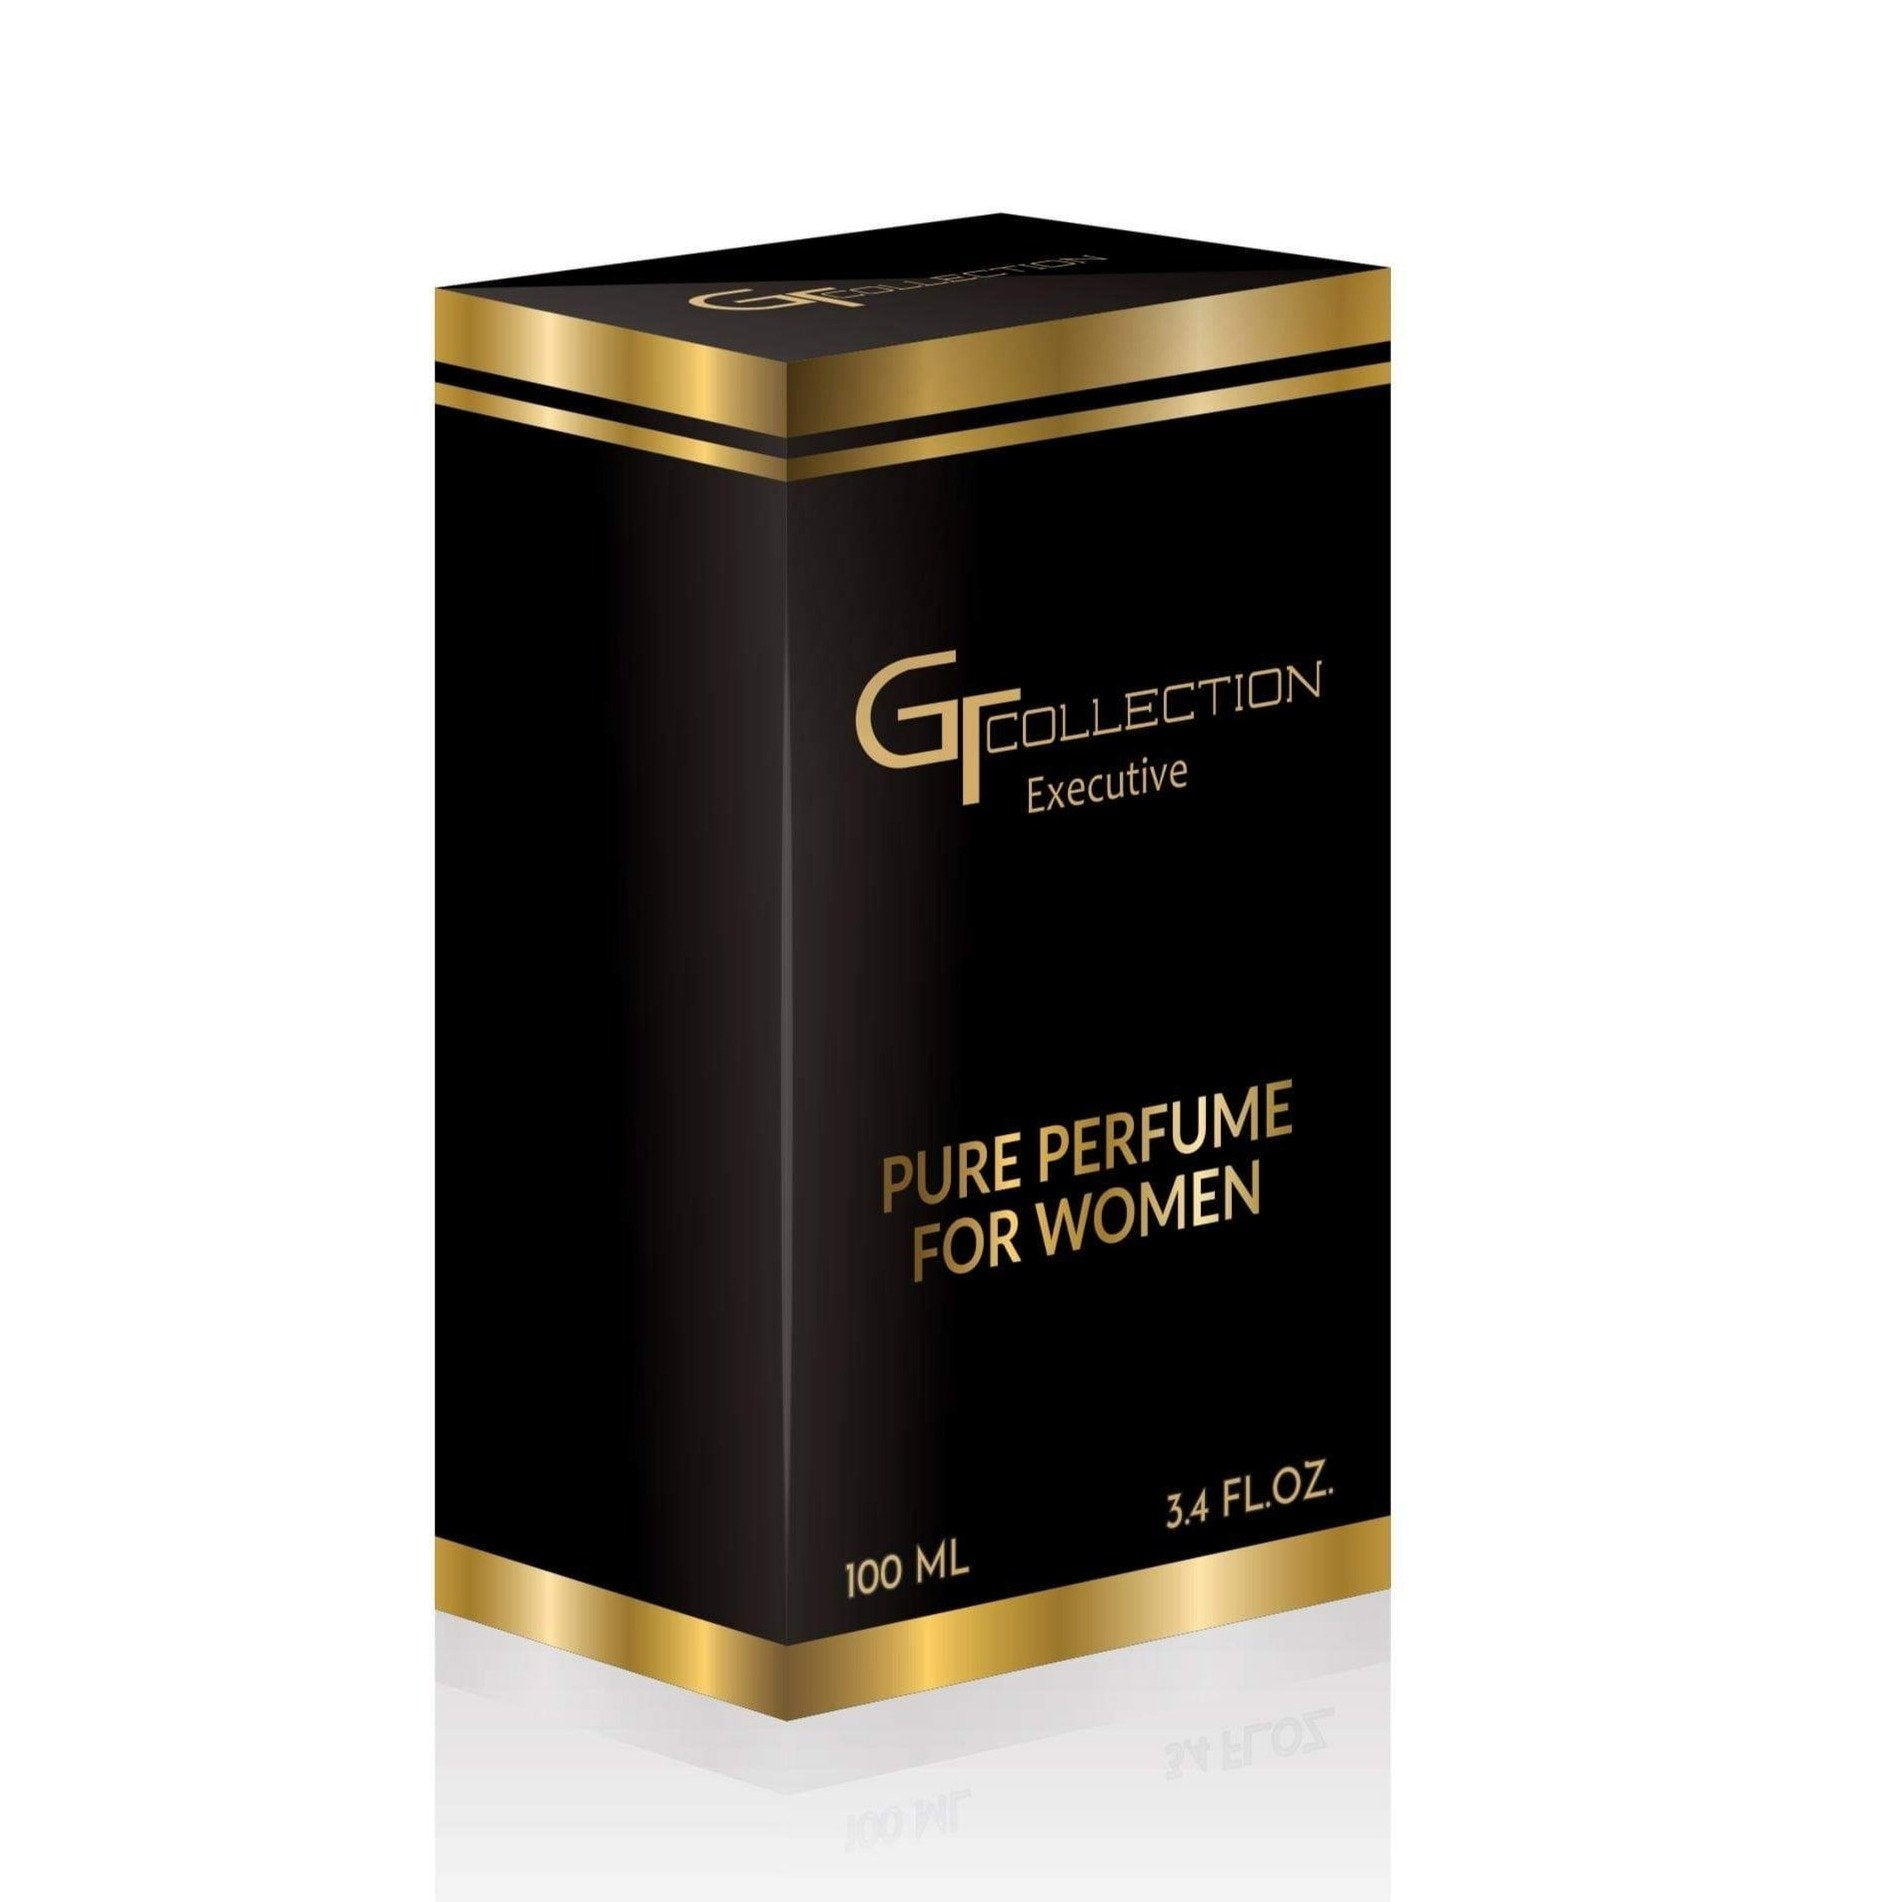 GT collection Executive | Pure Perfume For Women